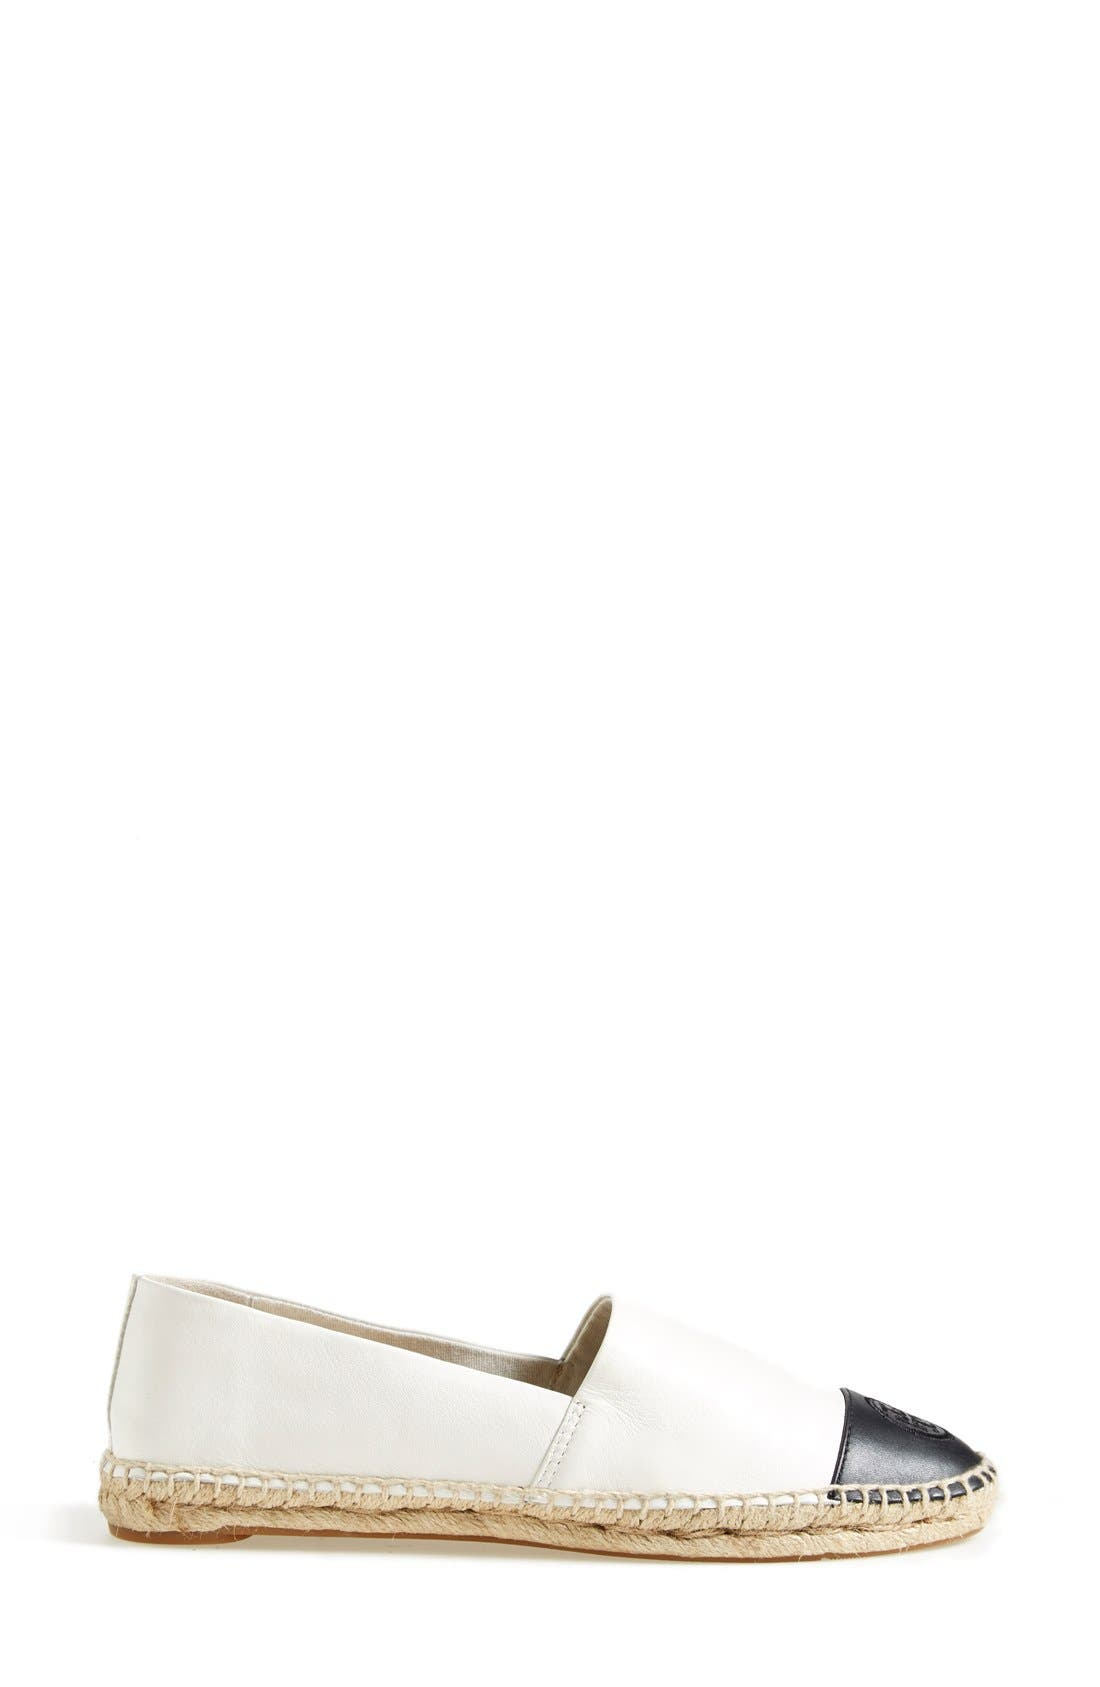 TORY BURCH, Colorblock Espadrille Flat, Alternate thumbnail 4, color, IVORY/ BLACK